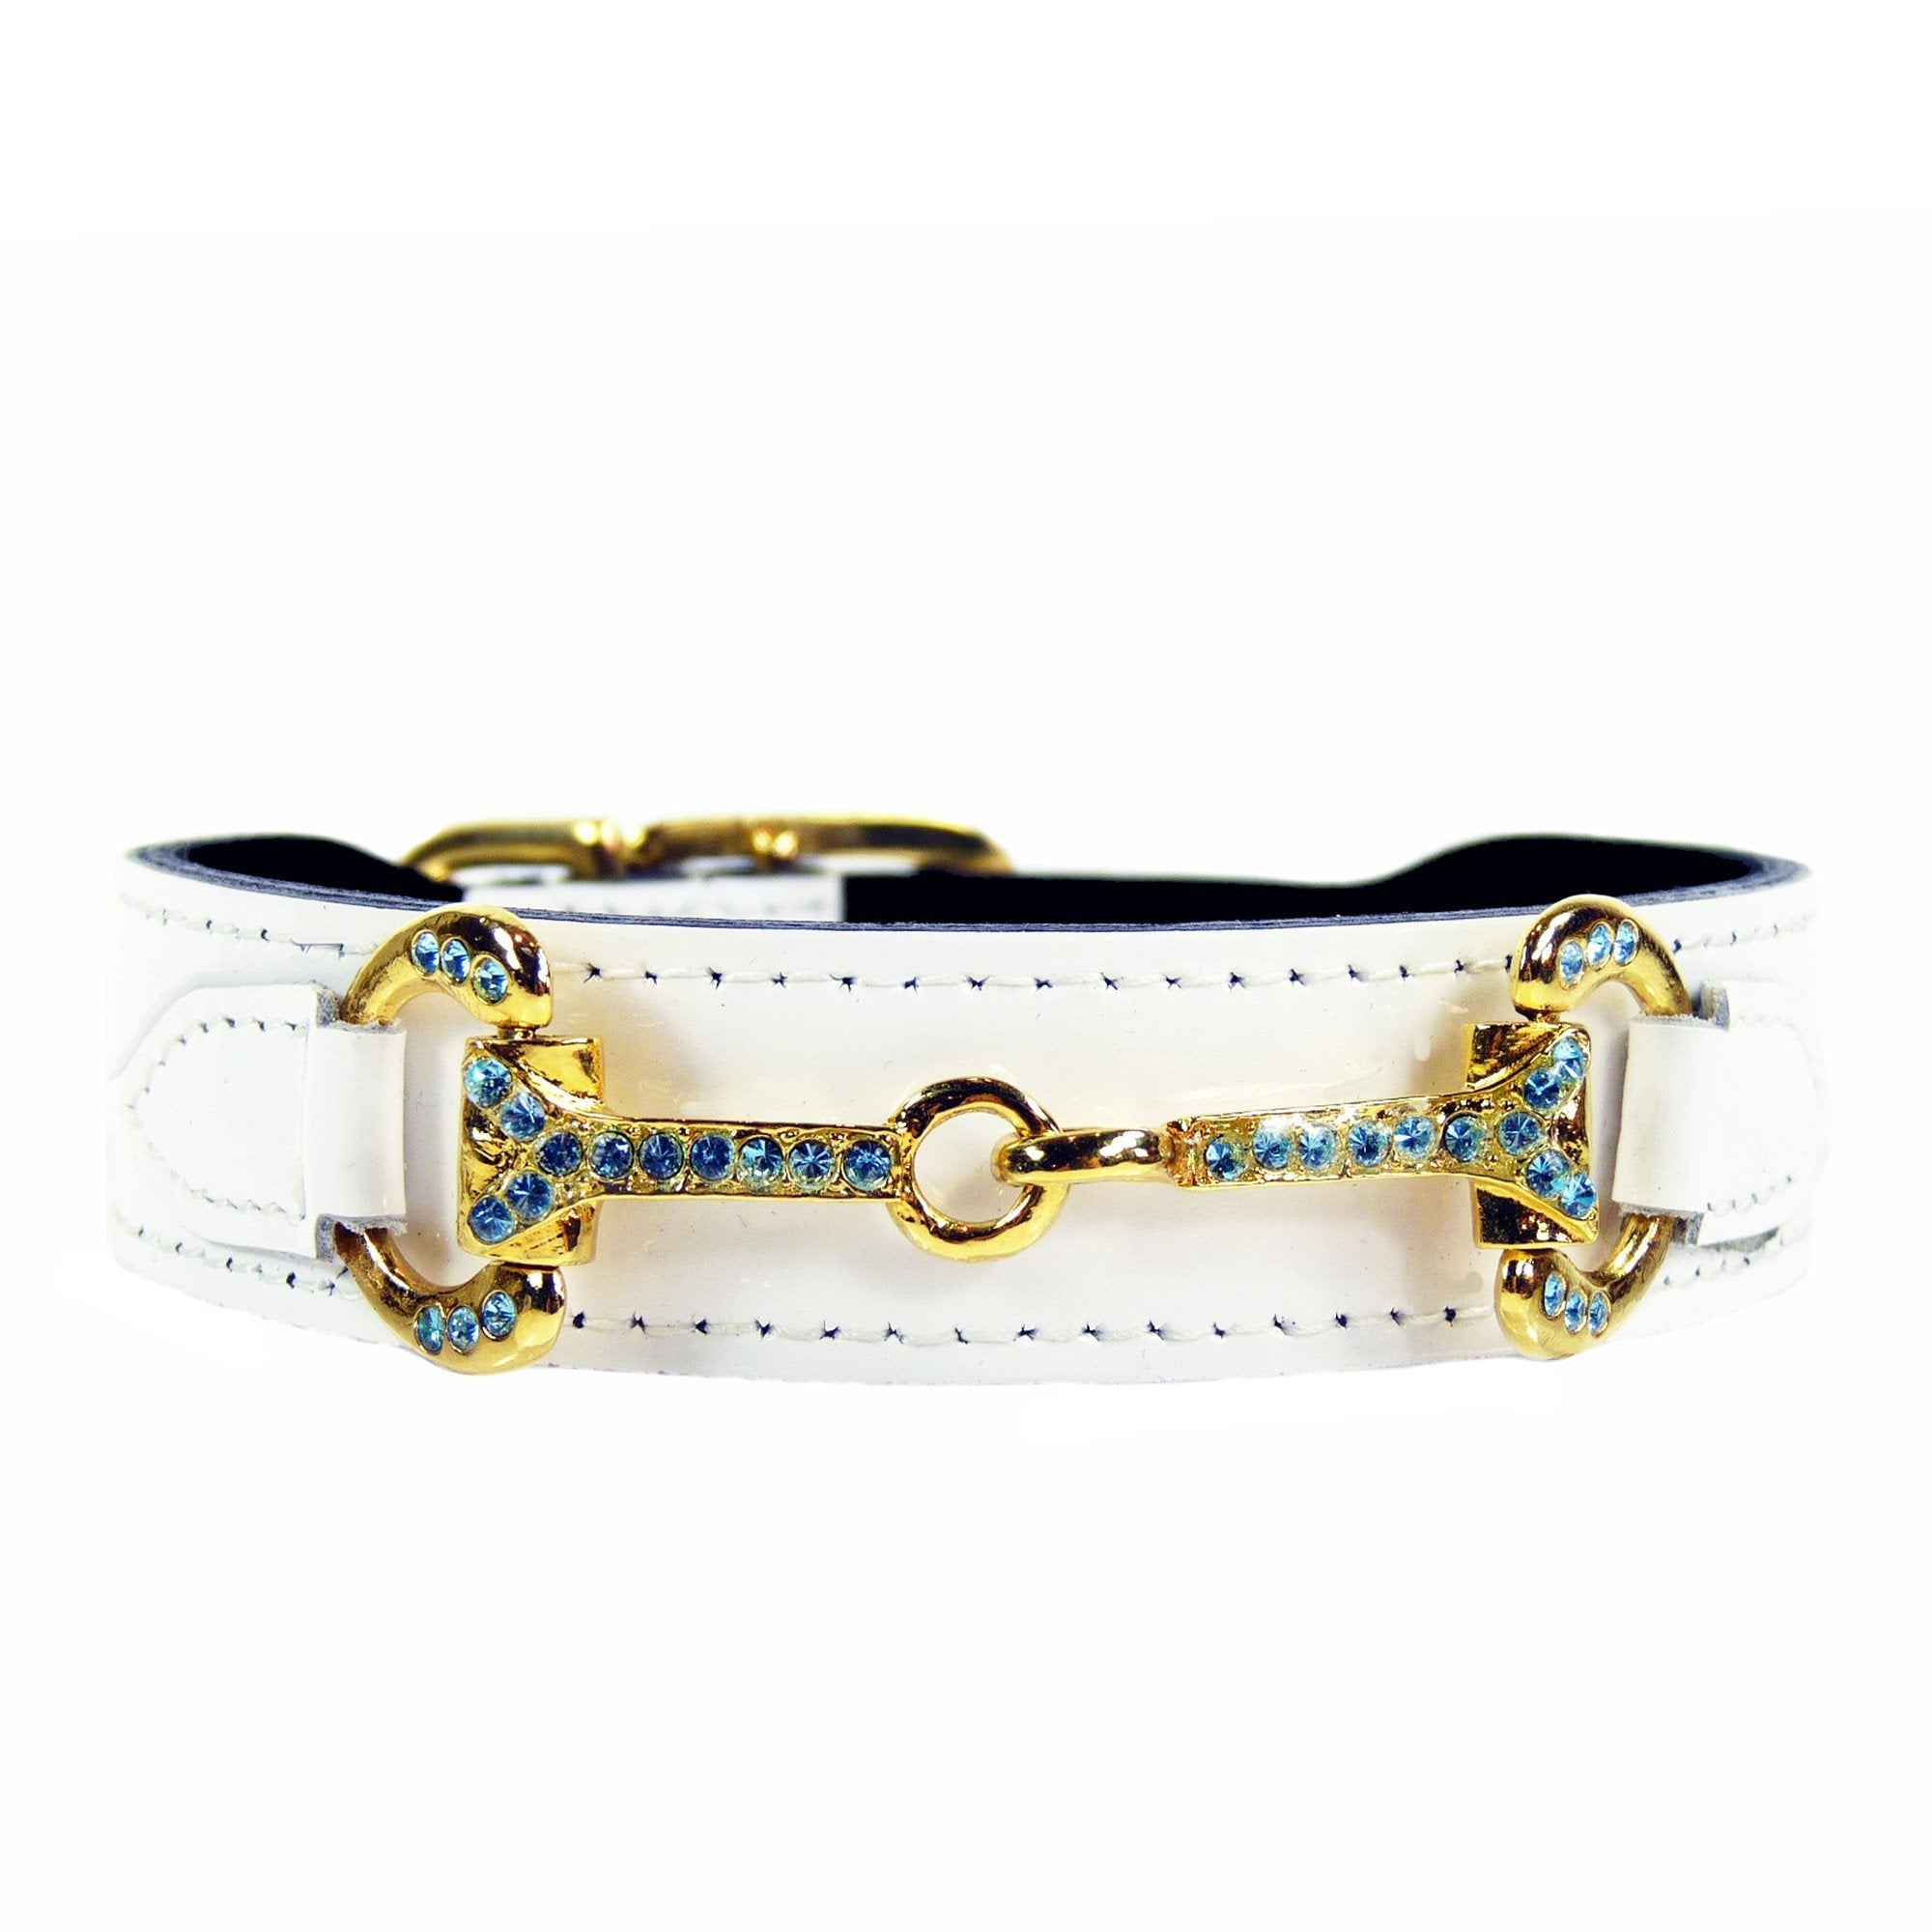 Hartman & Rose White Patent Leather Dog Collar With Aquamarine Swarovski Crystals Icon- Gold Hardware